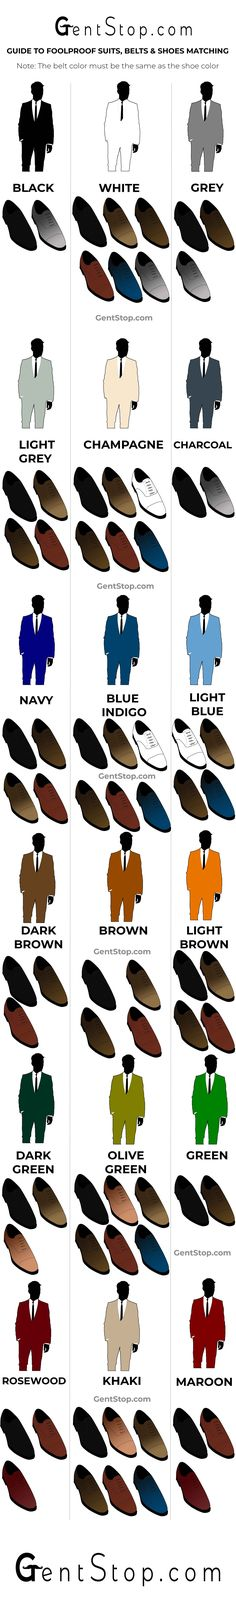 A gift to our followers. The ultimate foolproof shoe, belt and suits color matching guide.  Pin, Like, Follow if you like it.